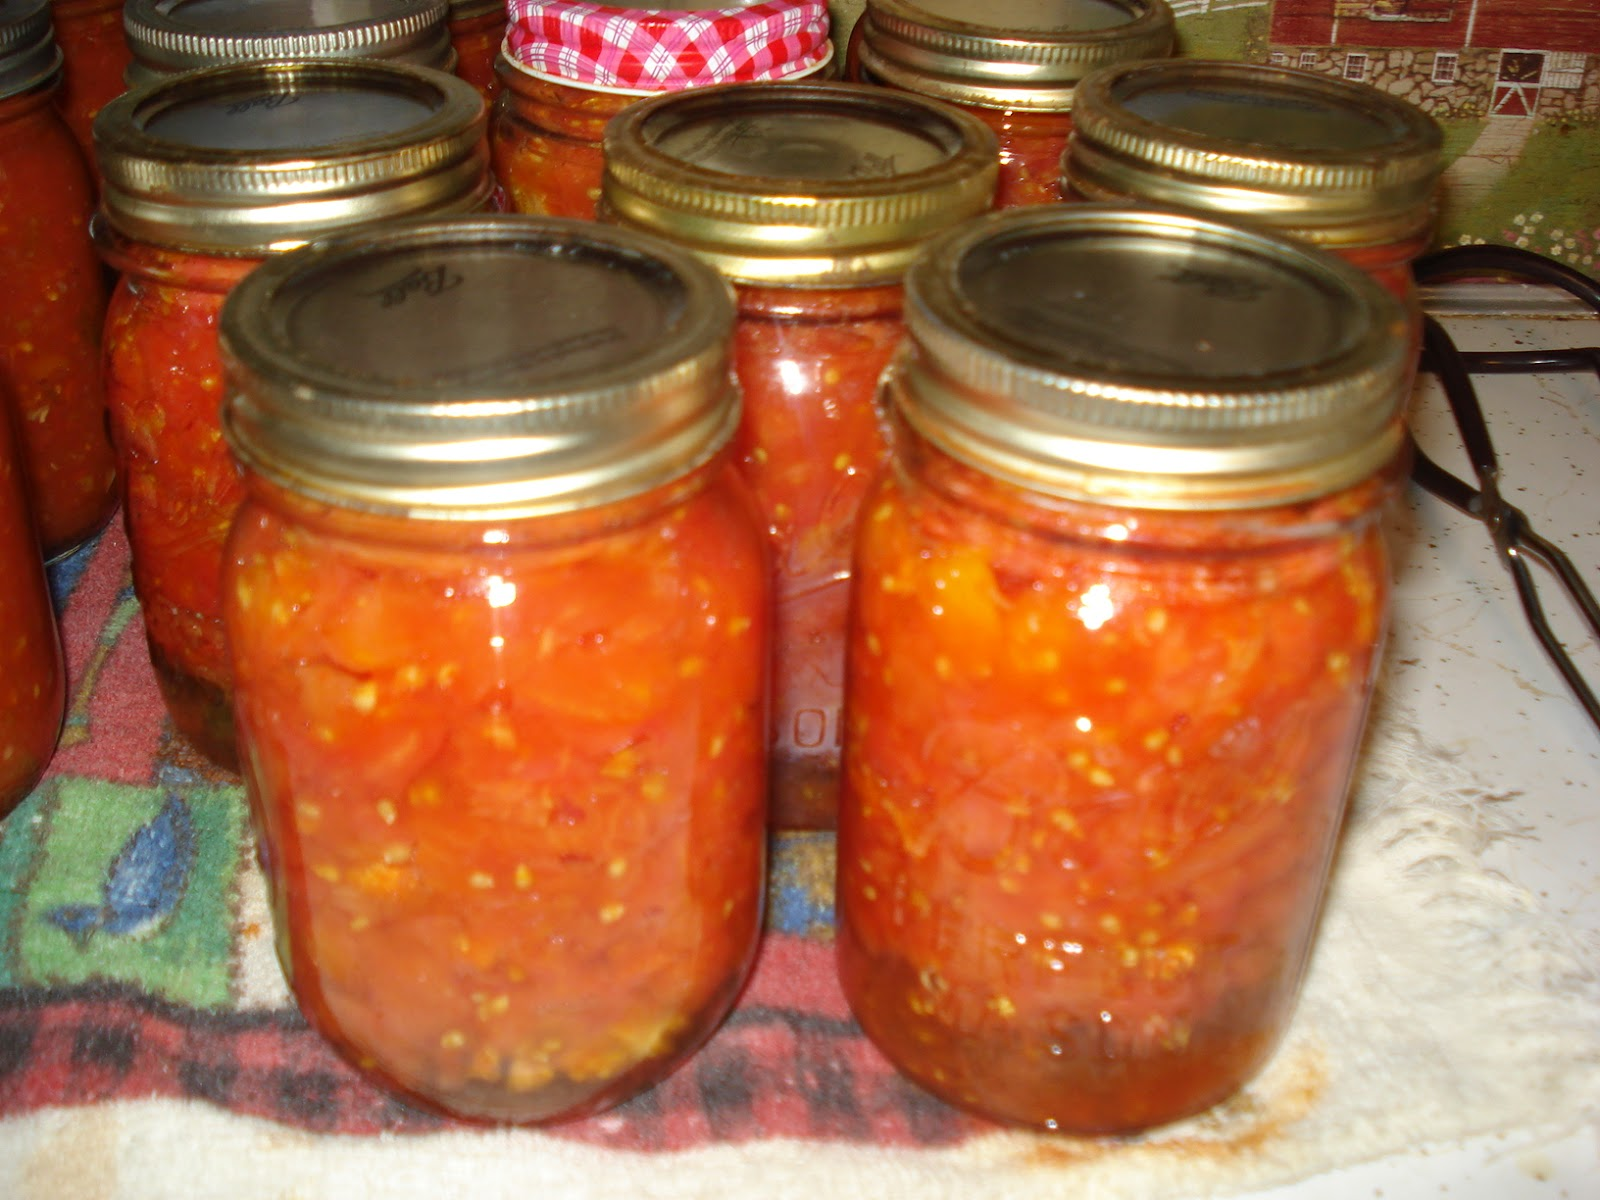 The Creative Home: Canning Diced Tomatoes